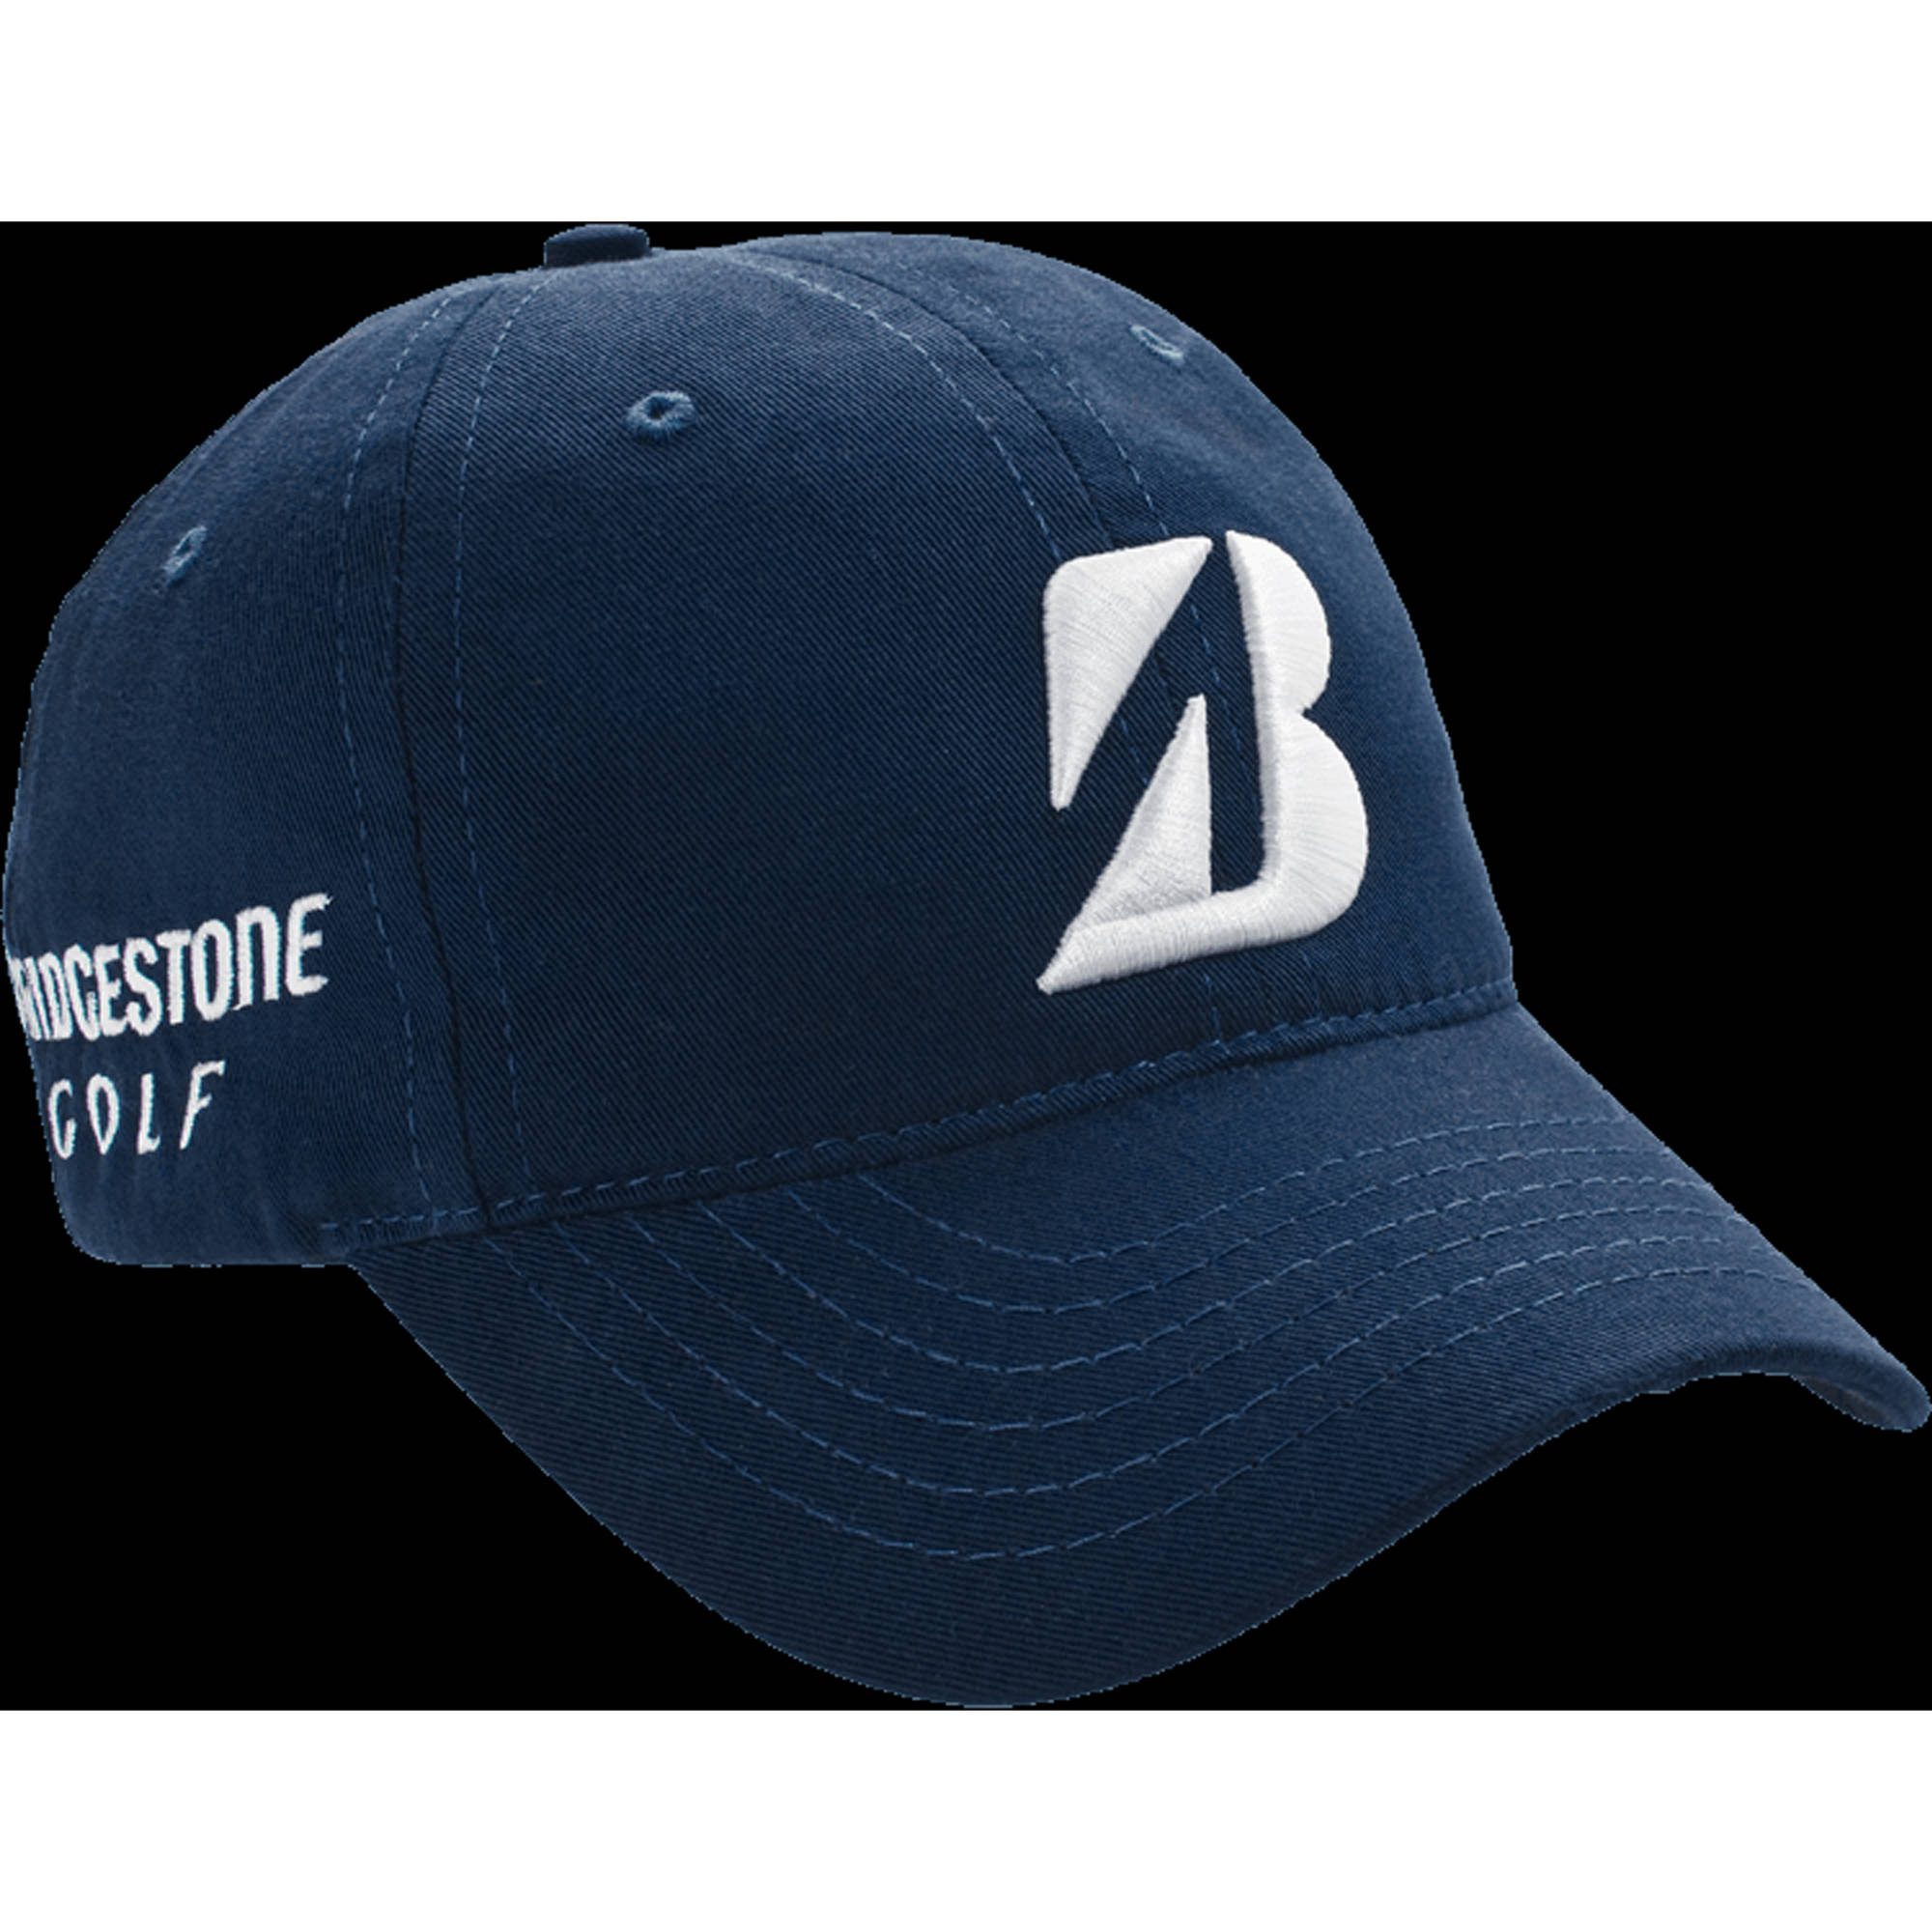 Bridgestone Golf Tour Relax Cap Navy